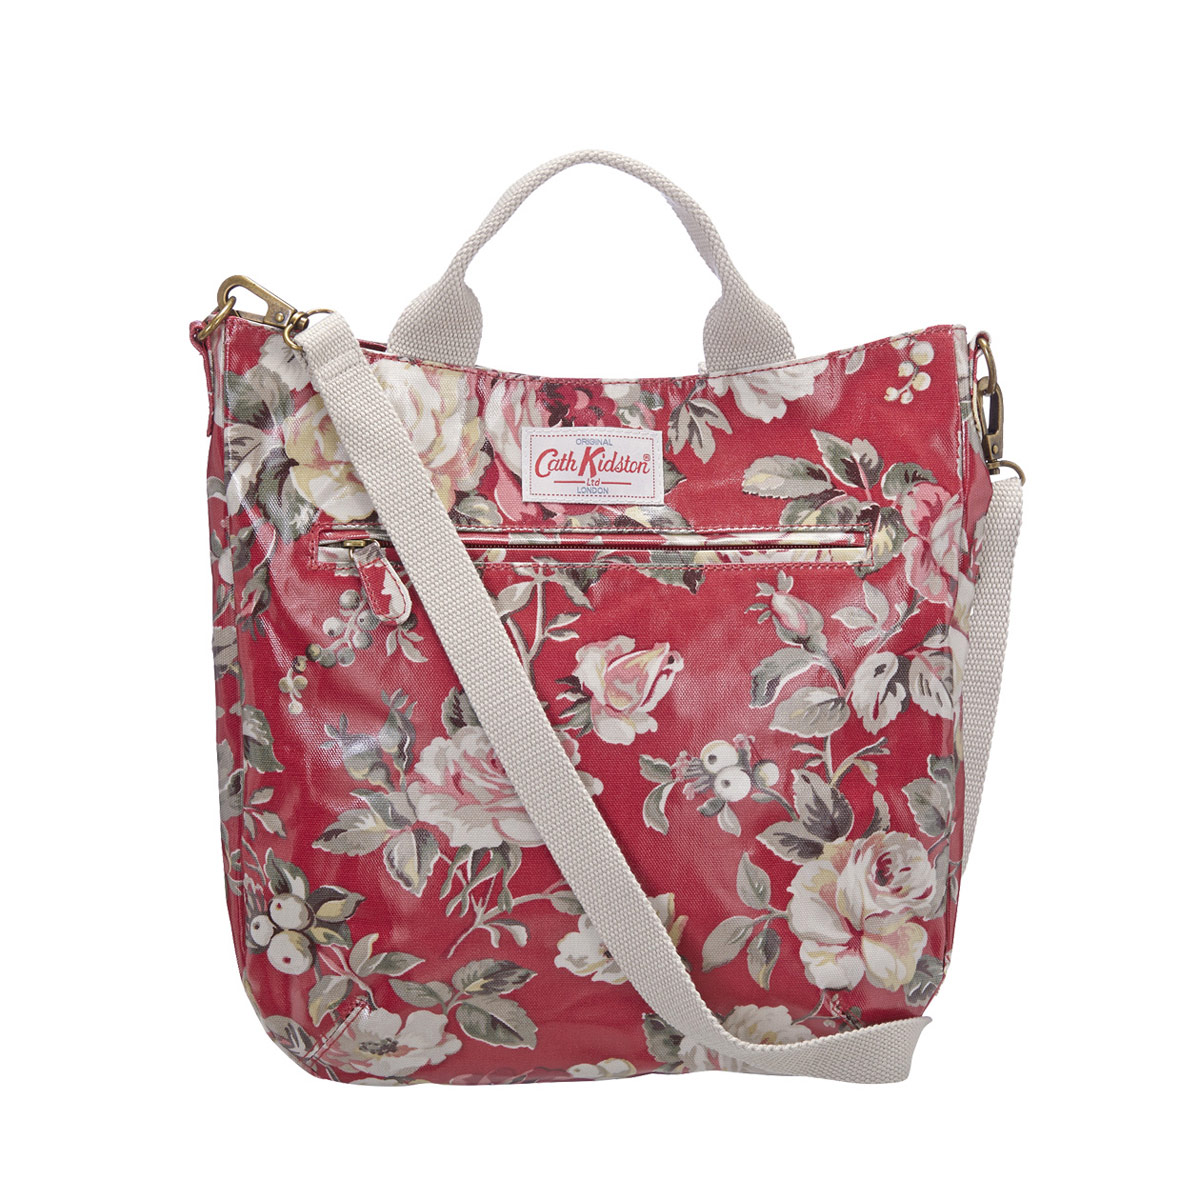 Cath Kidston Garden Rose Red Cross Body Bag – Penny Royal Gifts